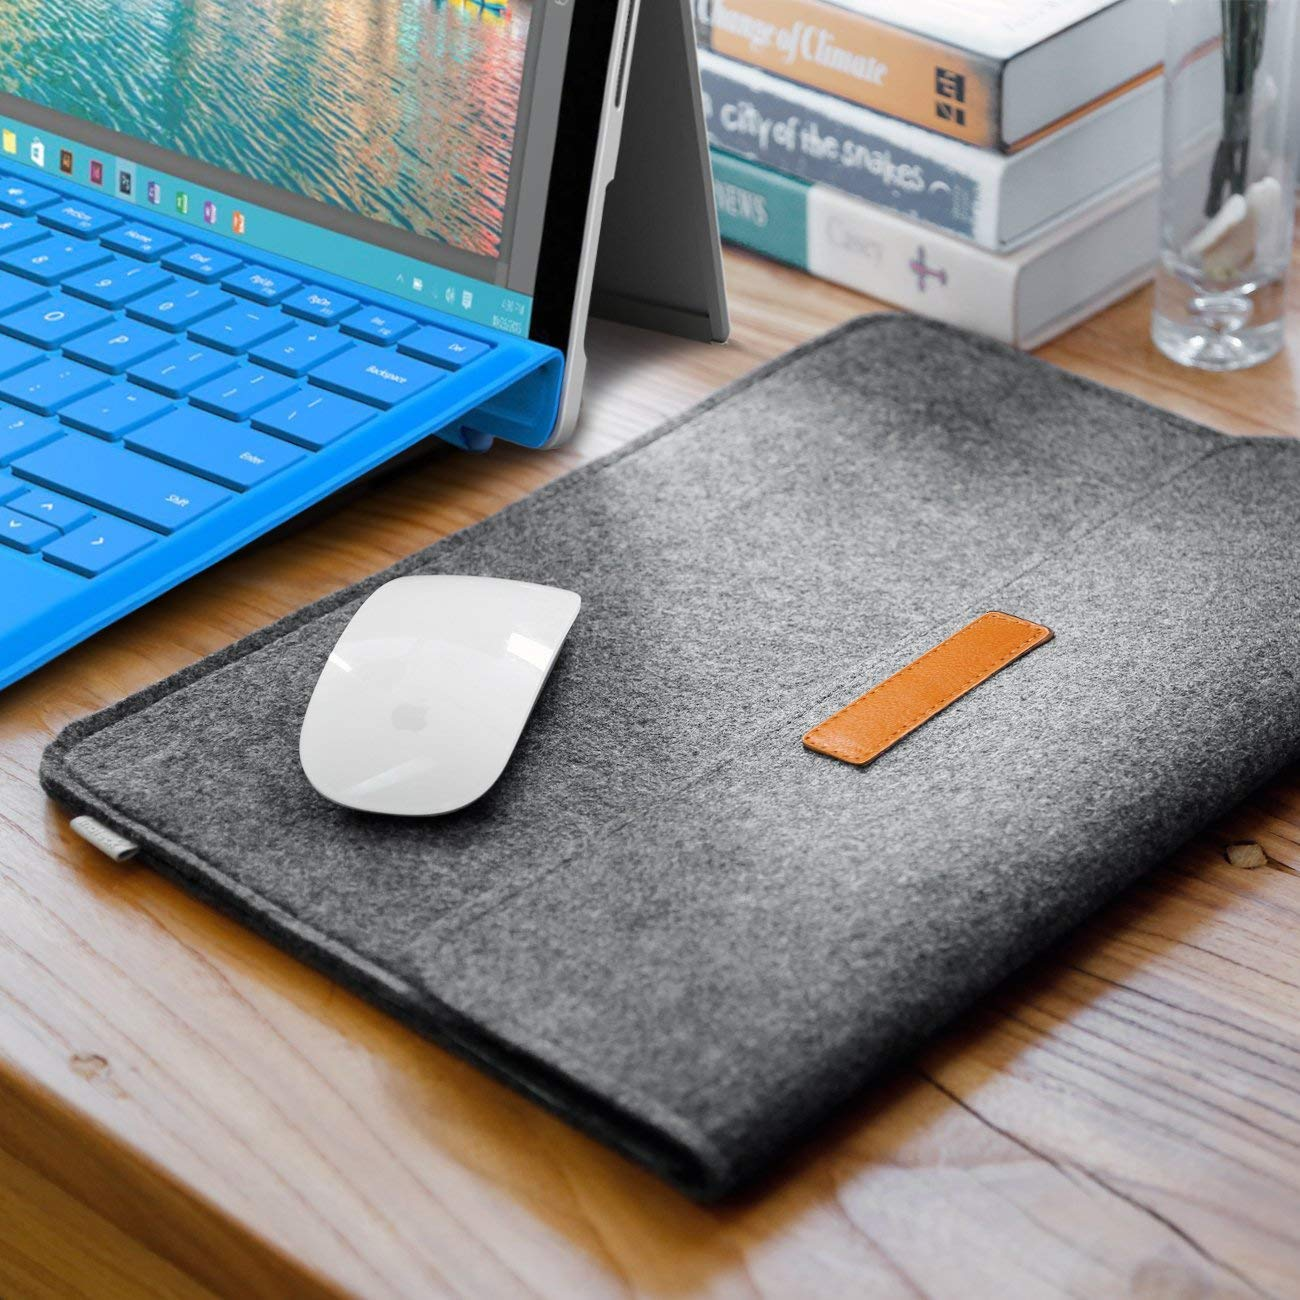 Inateck 12.3-13 Inch Laptop Sleeve Case Compatible 2018 MacBook Air, MacBook Pro 13'' 2018/2017/2016 (A1989/A1706/A1708)/Microsoft Surface Pro 6/5/4/3,  - Dark Gray by Inateck (Image #4)